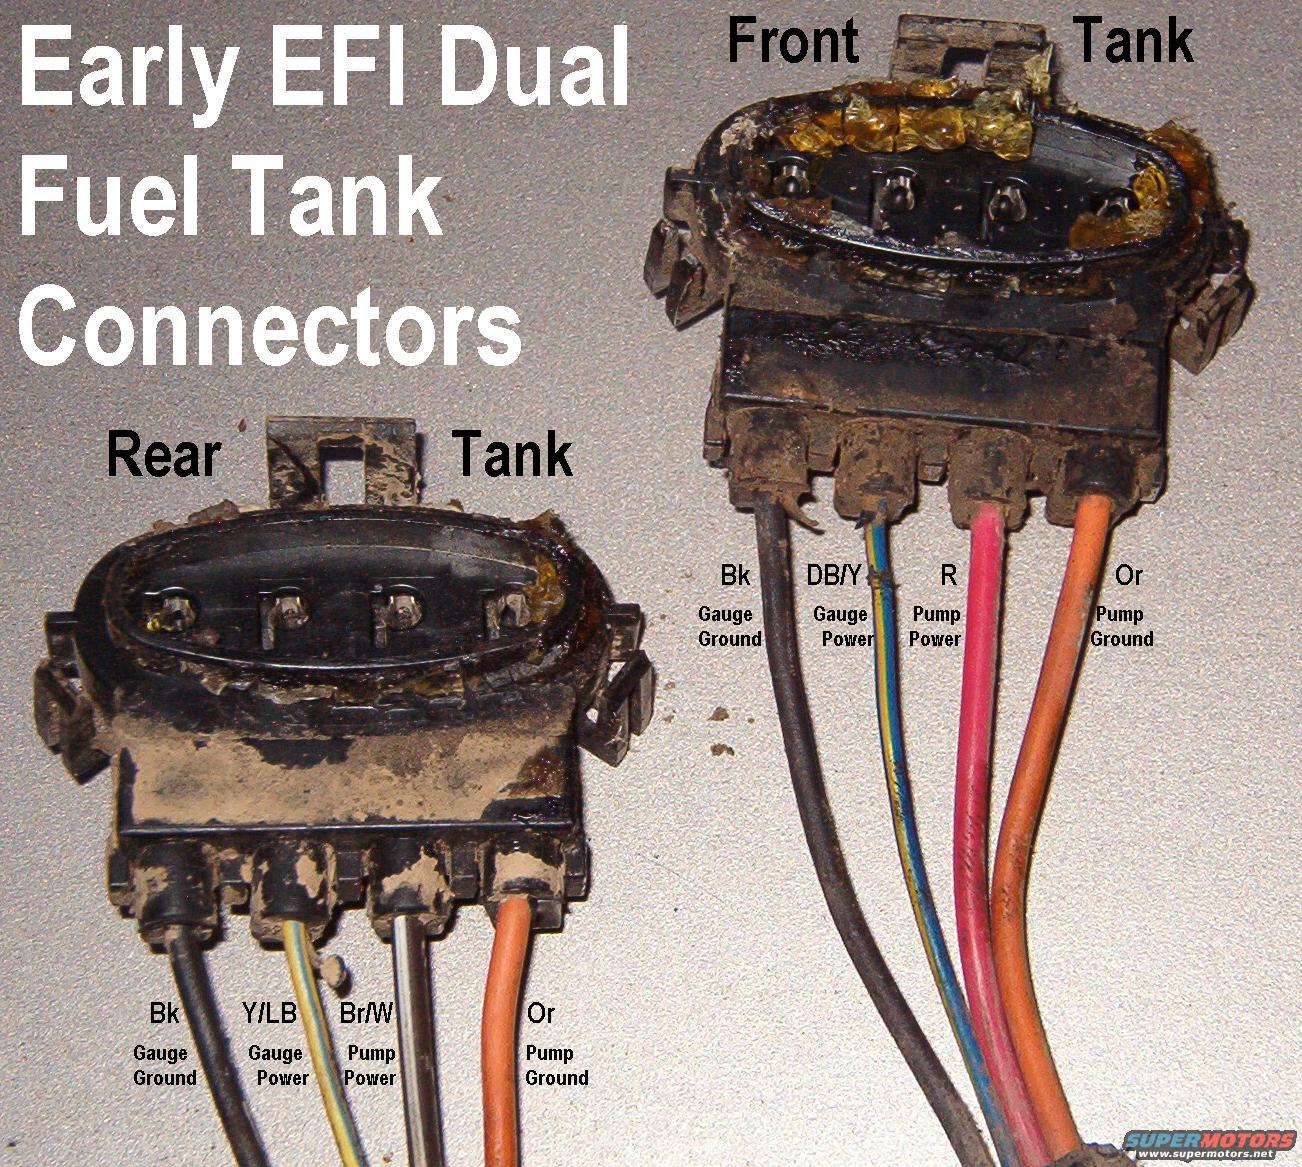 1993 ford ranger fuel pump wiring diagram 2006 gmc sierra 2500 radio 1983 bronco 3990 96 system picture